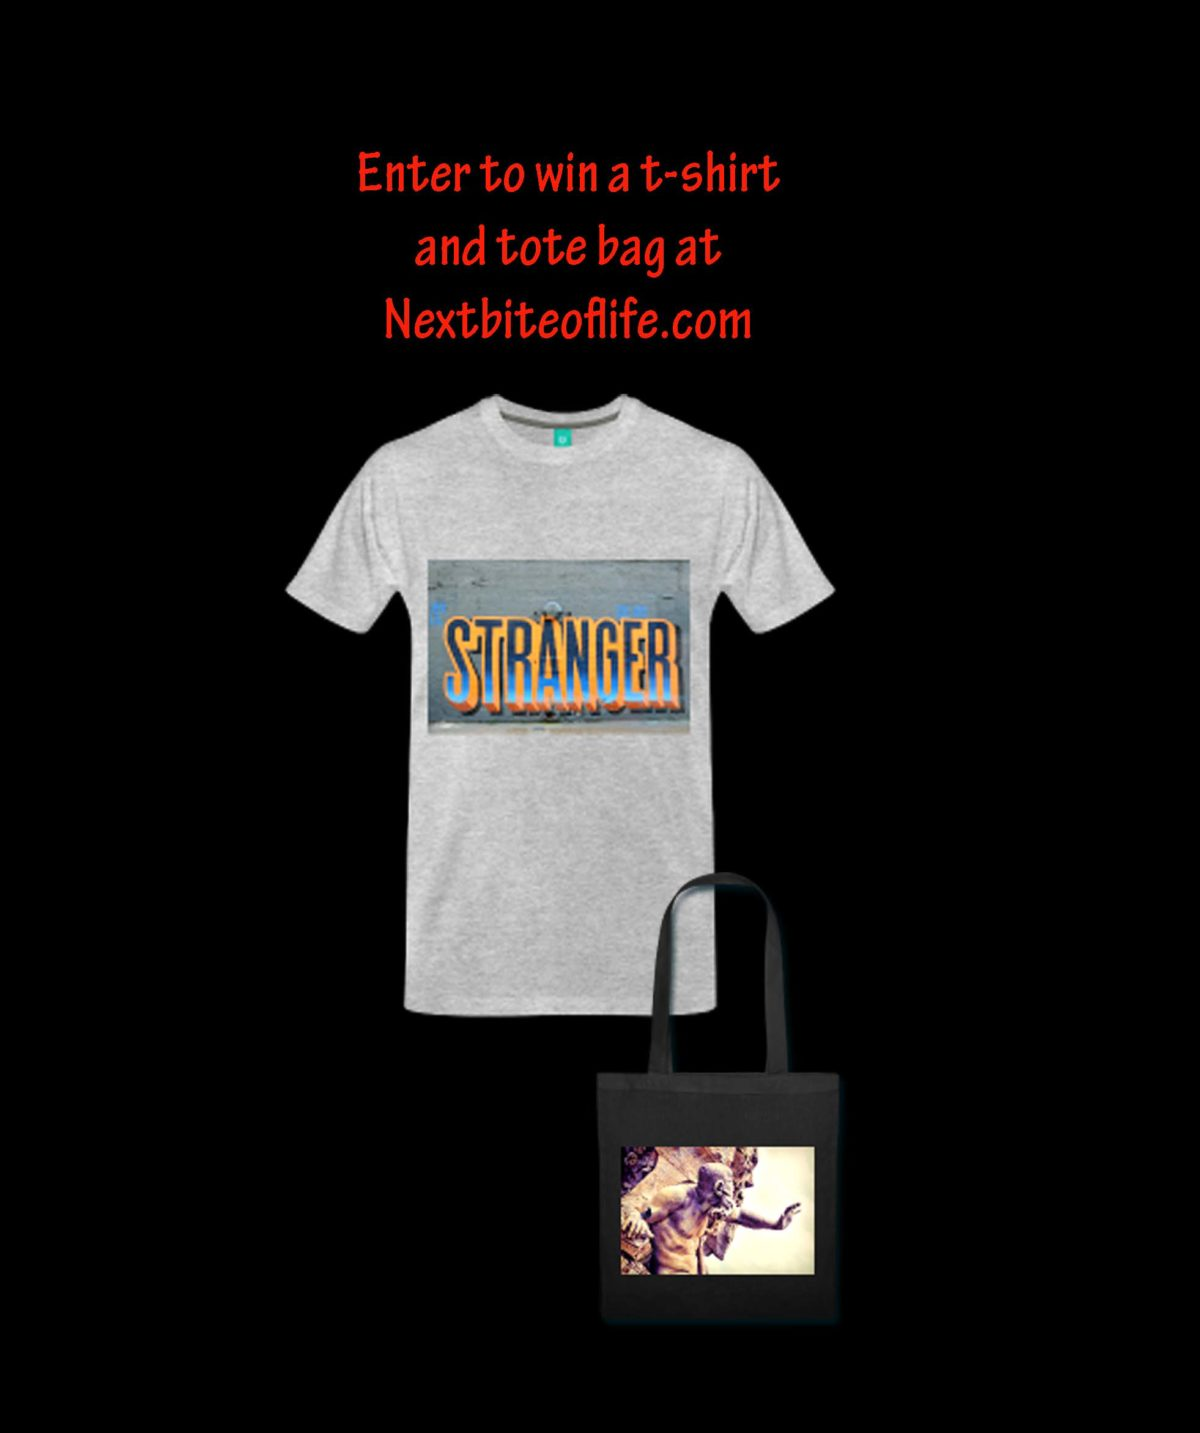 win a t-shirt and tote bag giveaway